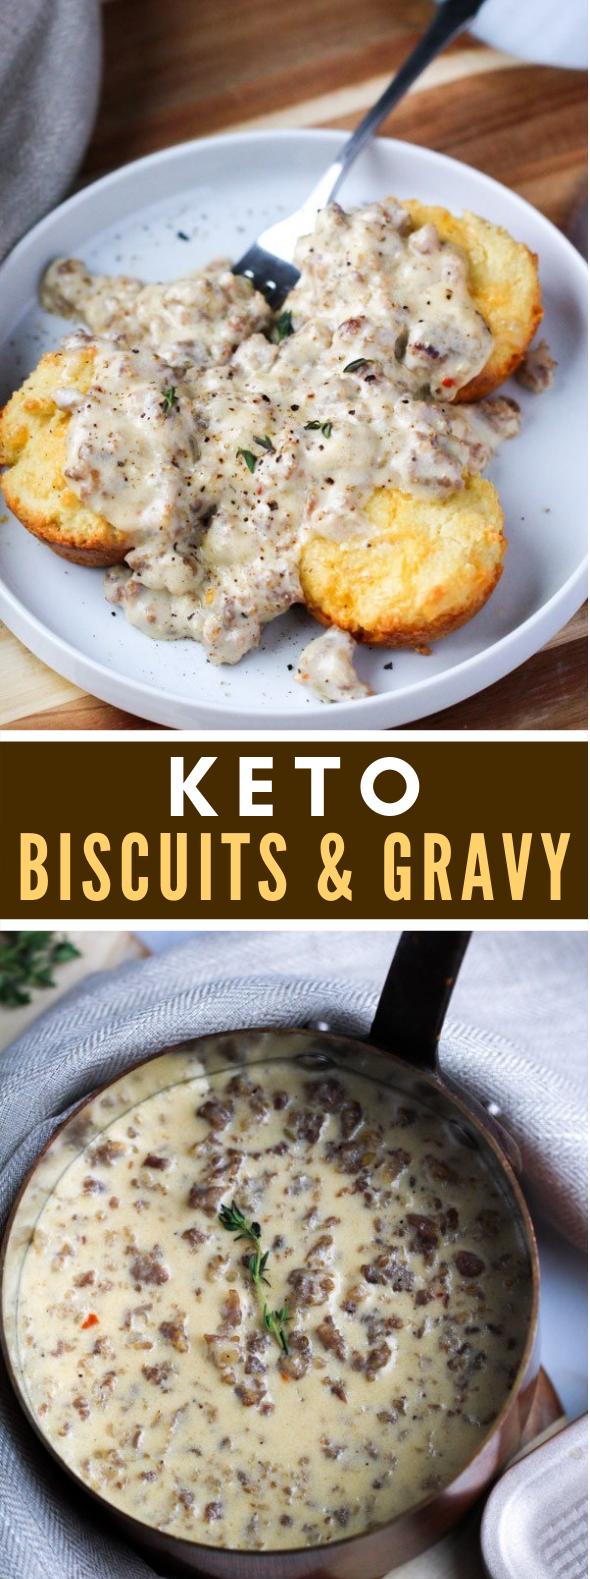 KETO BISCUITS AND GRAVY #healthy #breakfast